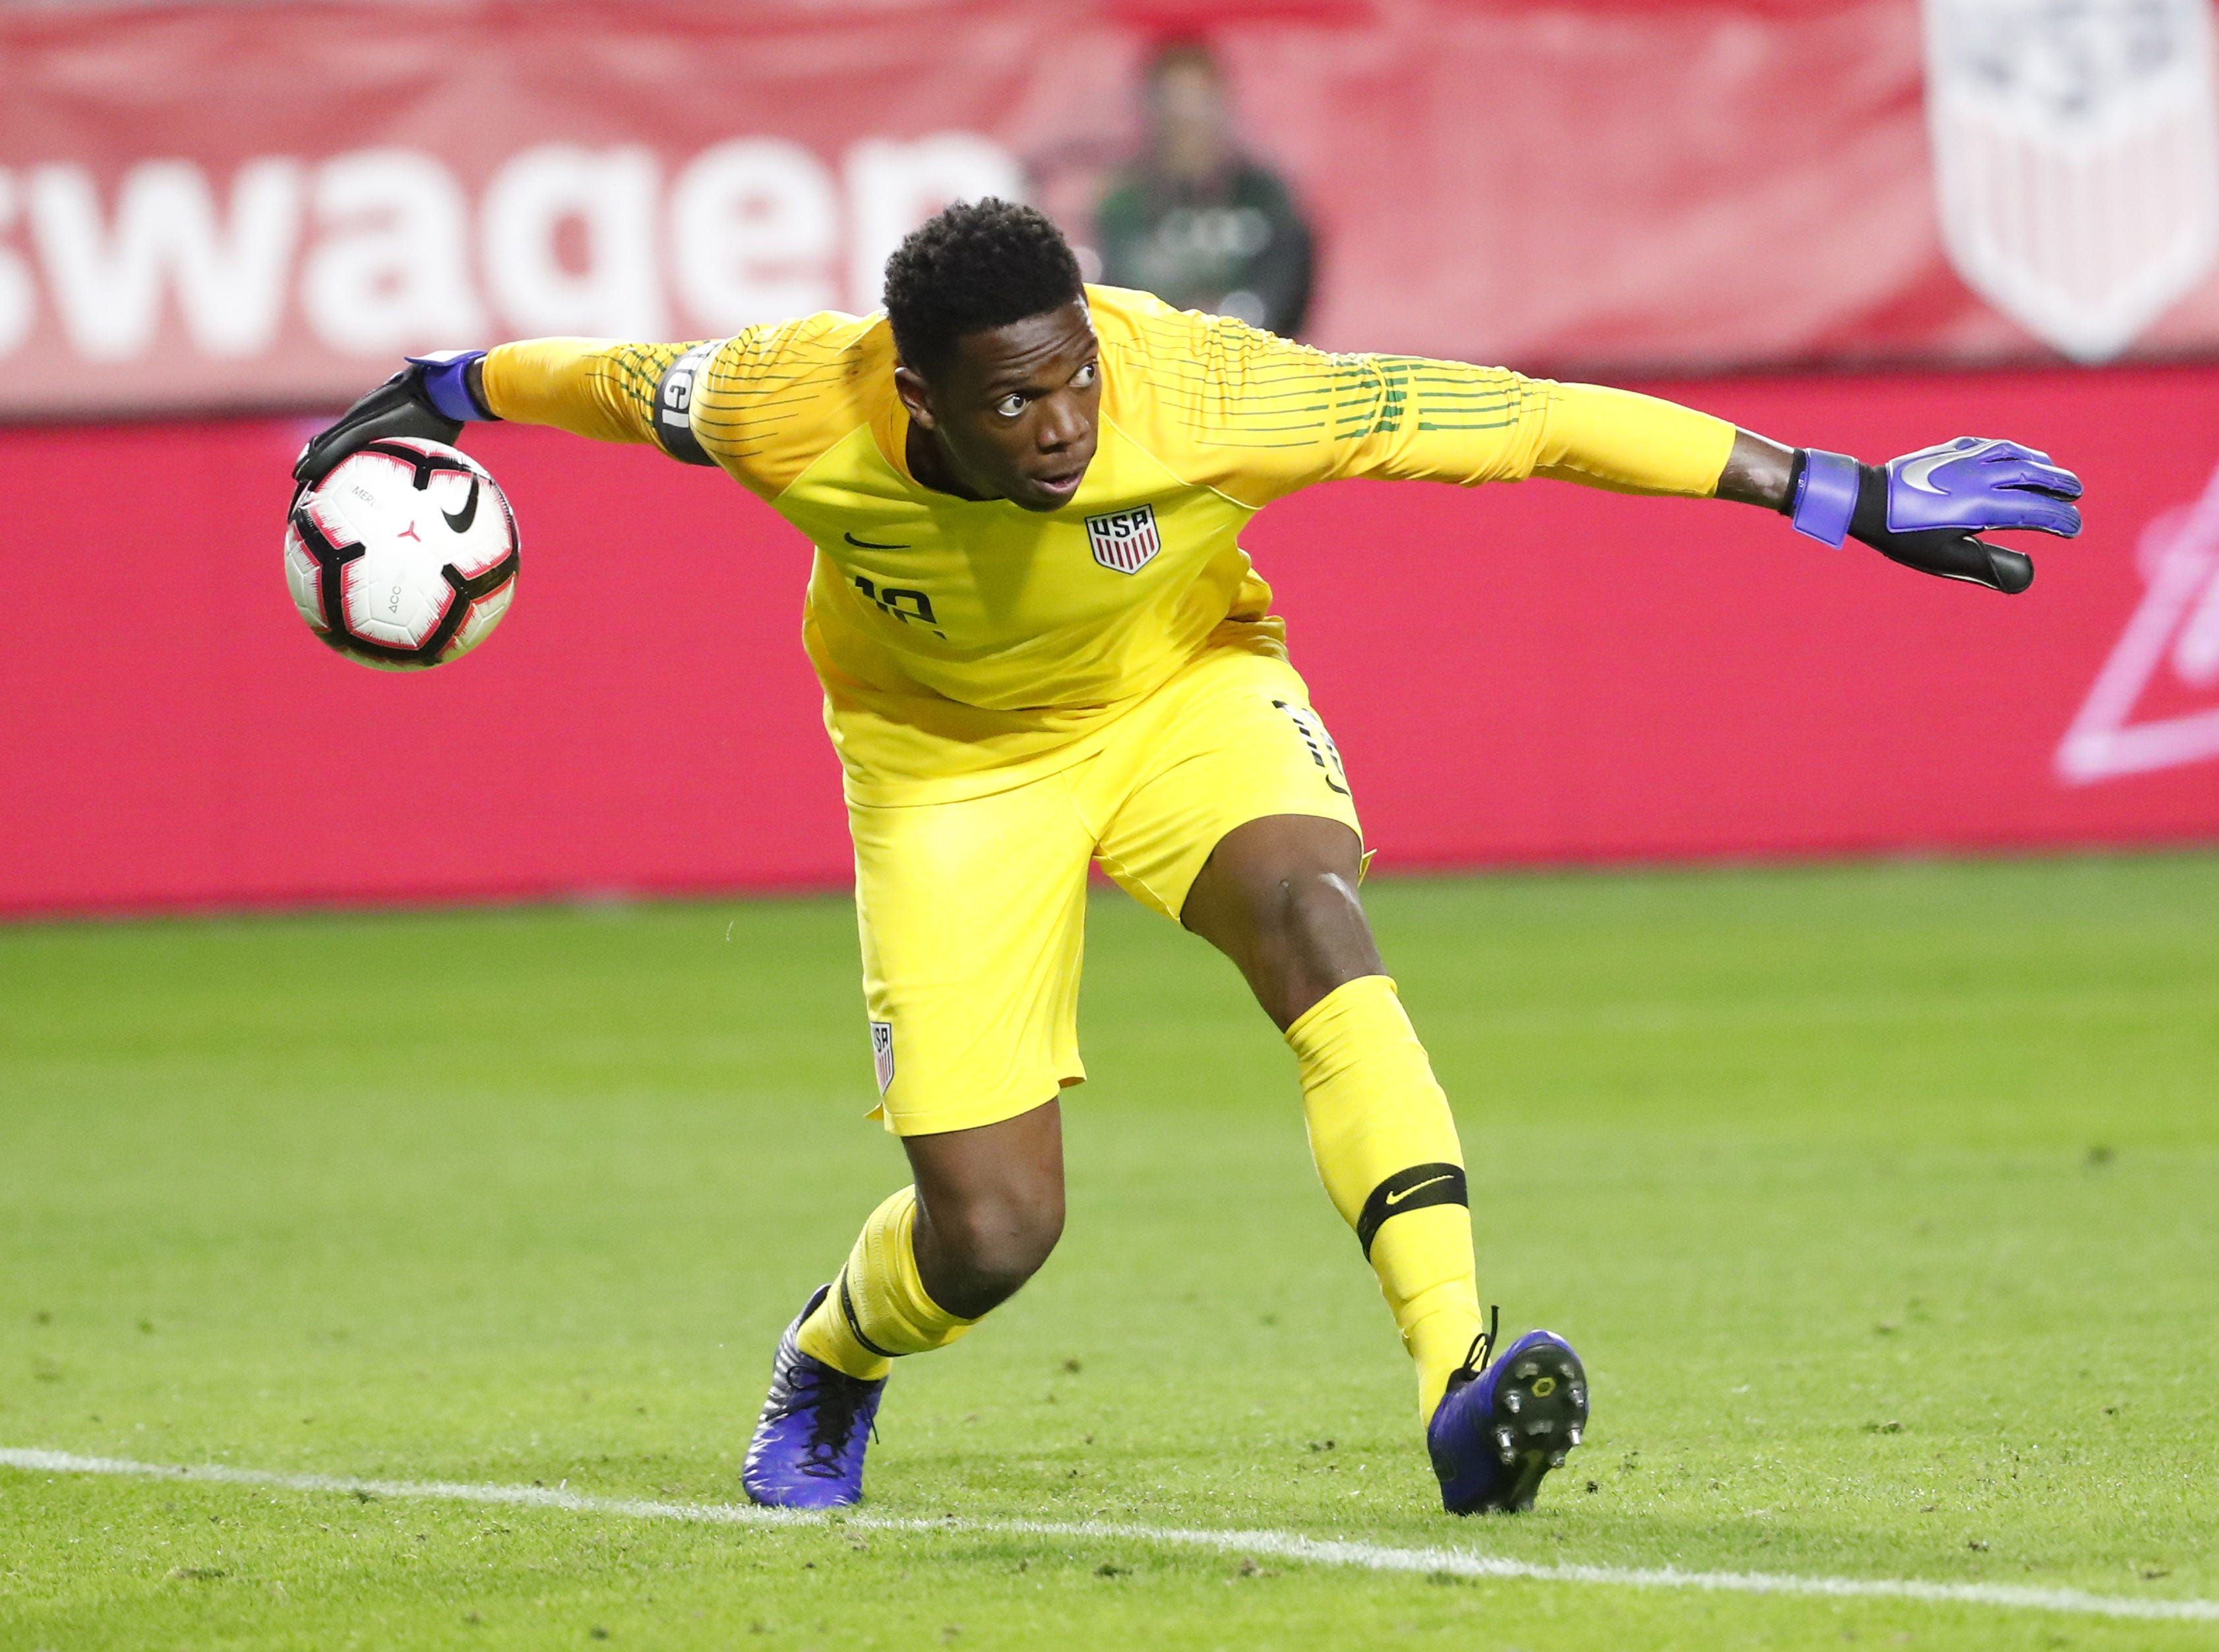 U.S. goalkeeper Sean Johnson (12) rolls the ball out against Panama during the second half of a friendly on Jan. 27, 2019 in Glendale, Ariz. The U.S. won 3-0.